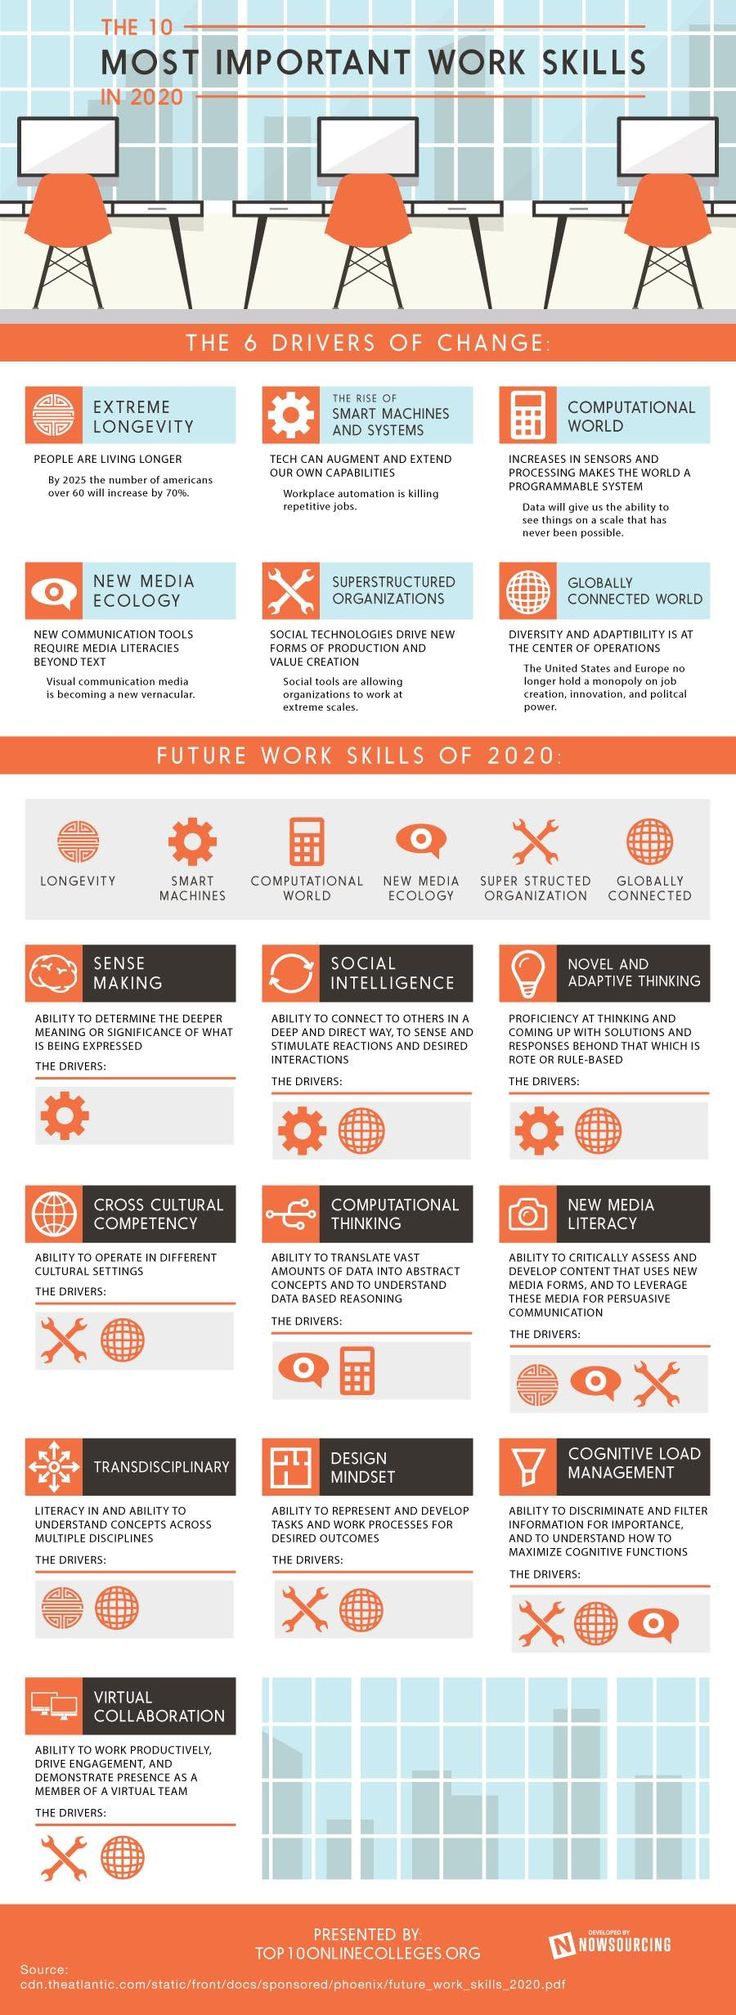 88 best images about Workplace Skills on Pinterest | Resume tips ...